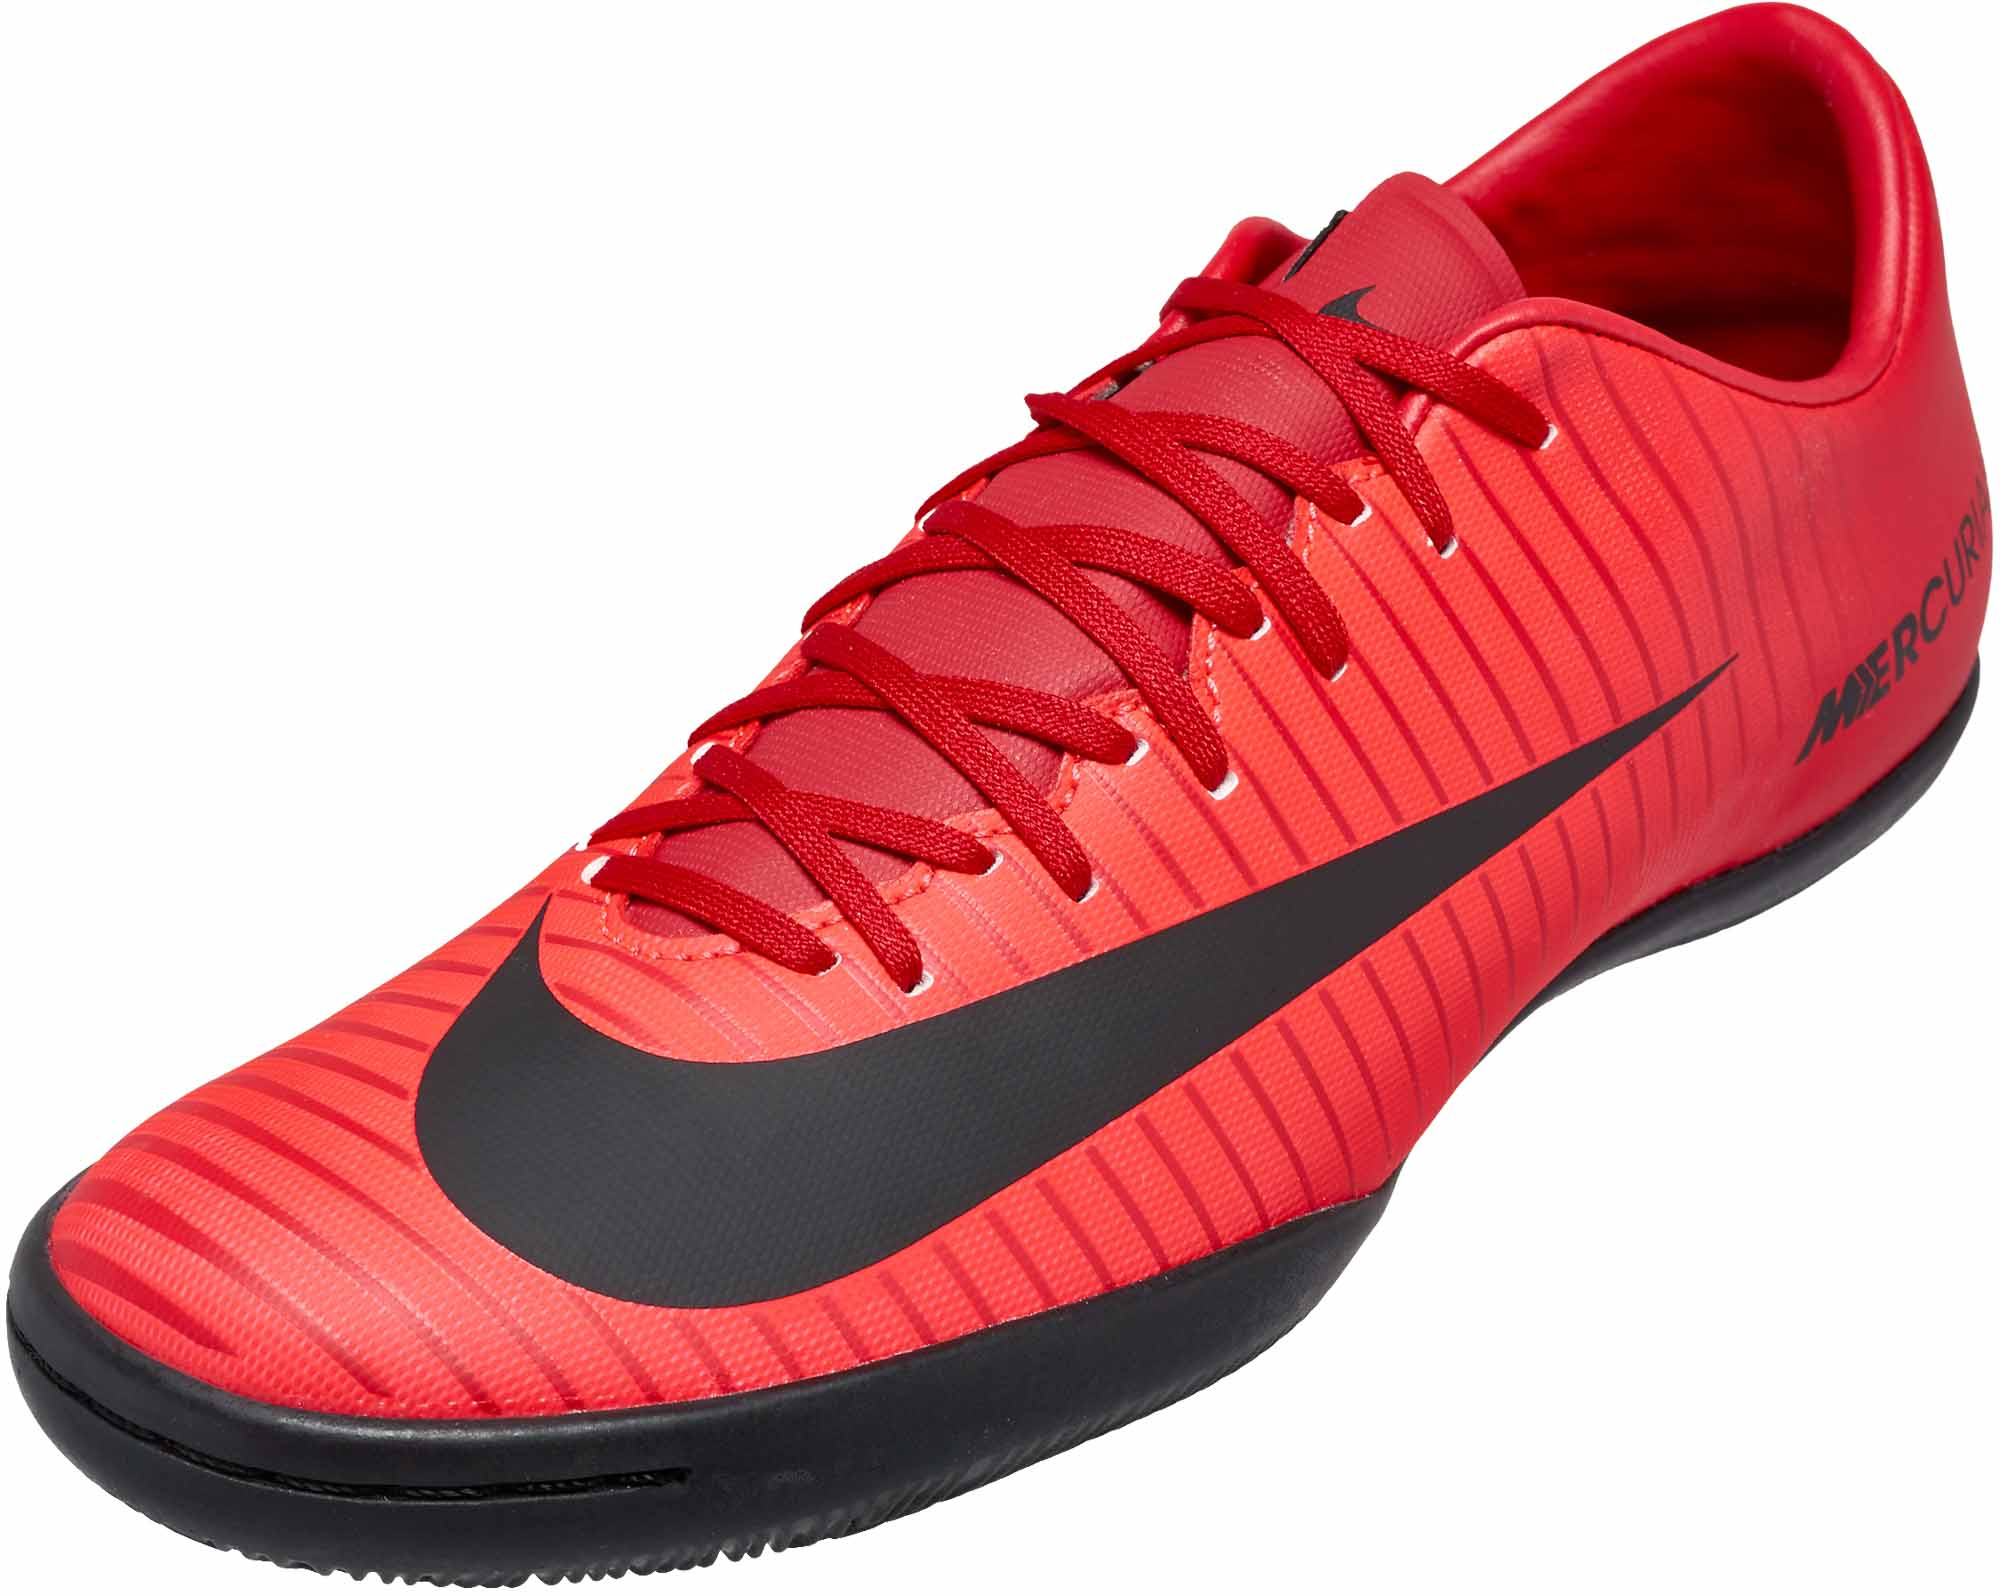 f8f685a5d Nike MercurialX Victory VI IC – University Red Black